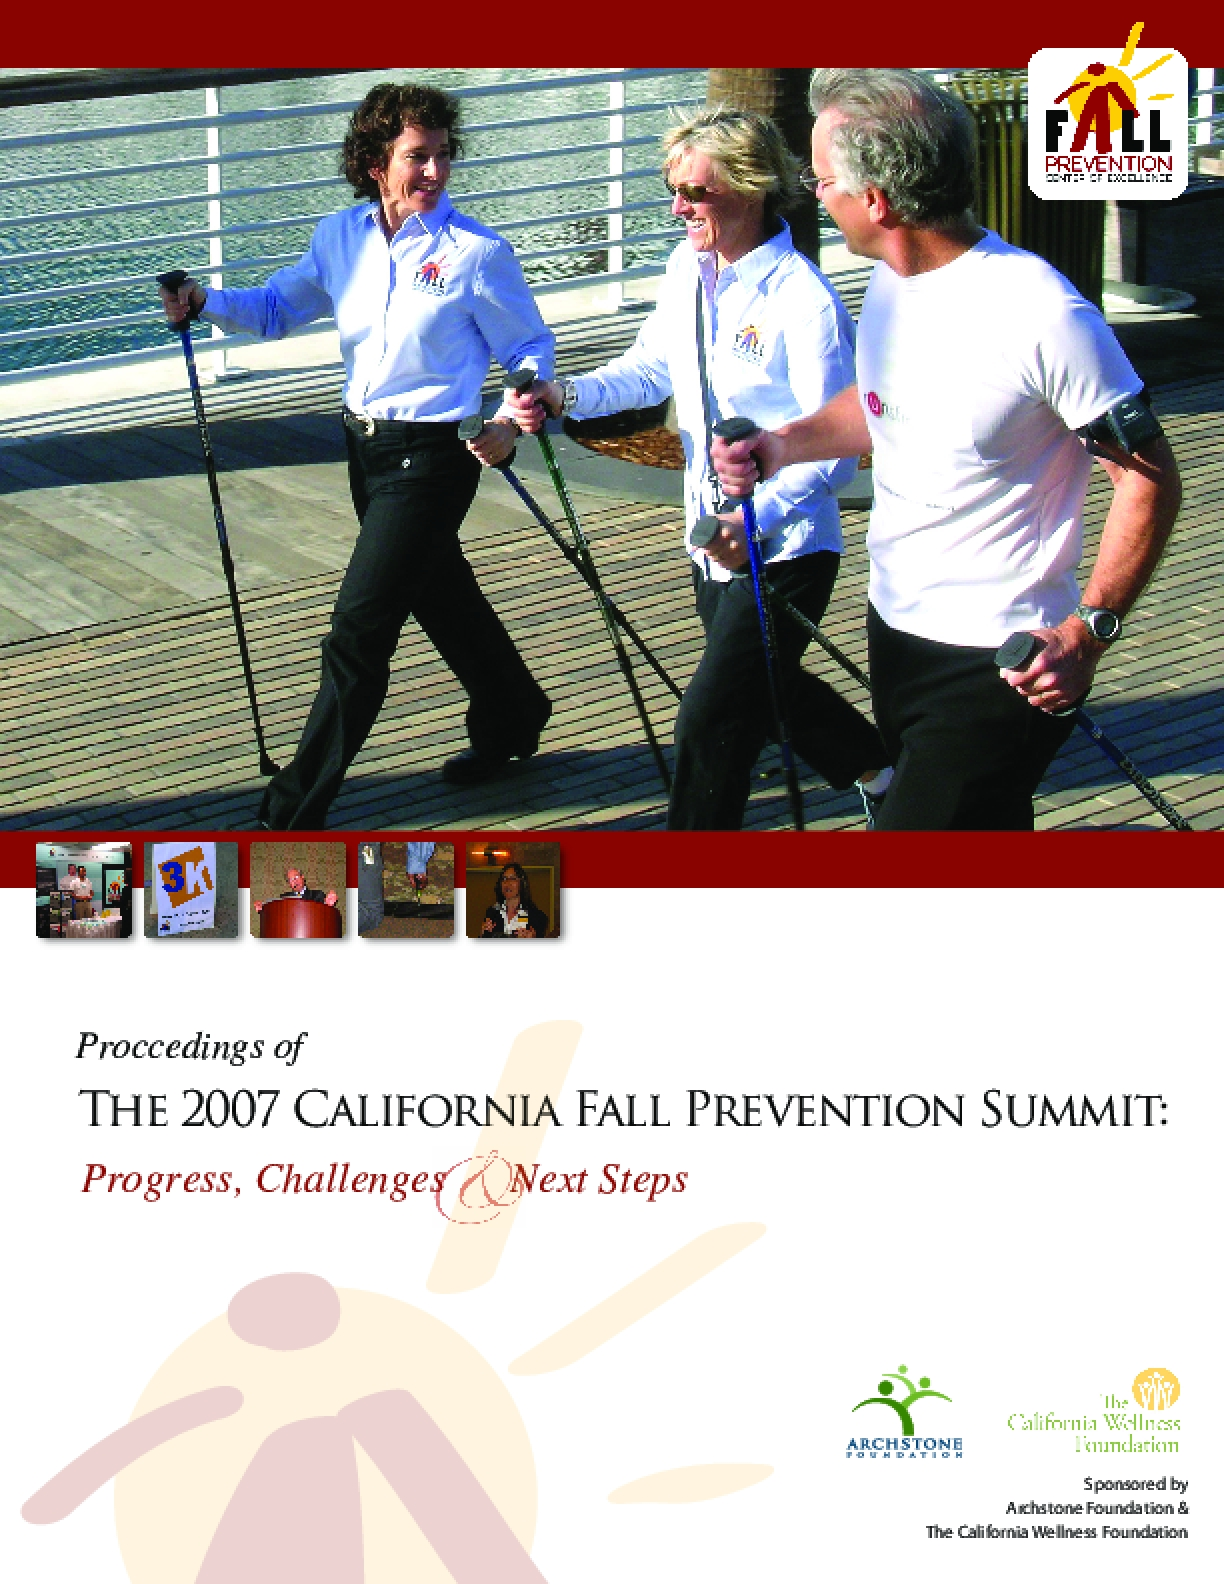 Proceedings of the 2007 California Fall Prevention Summit